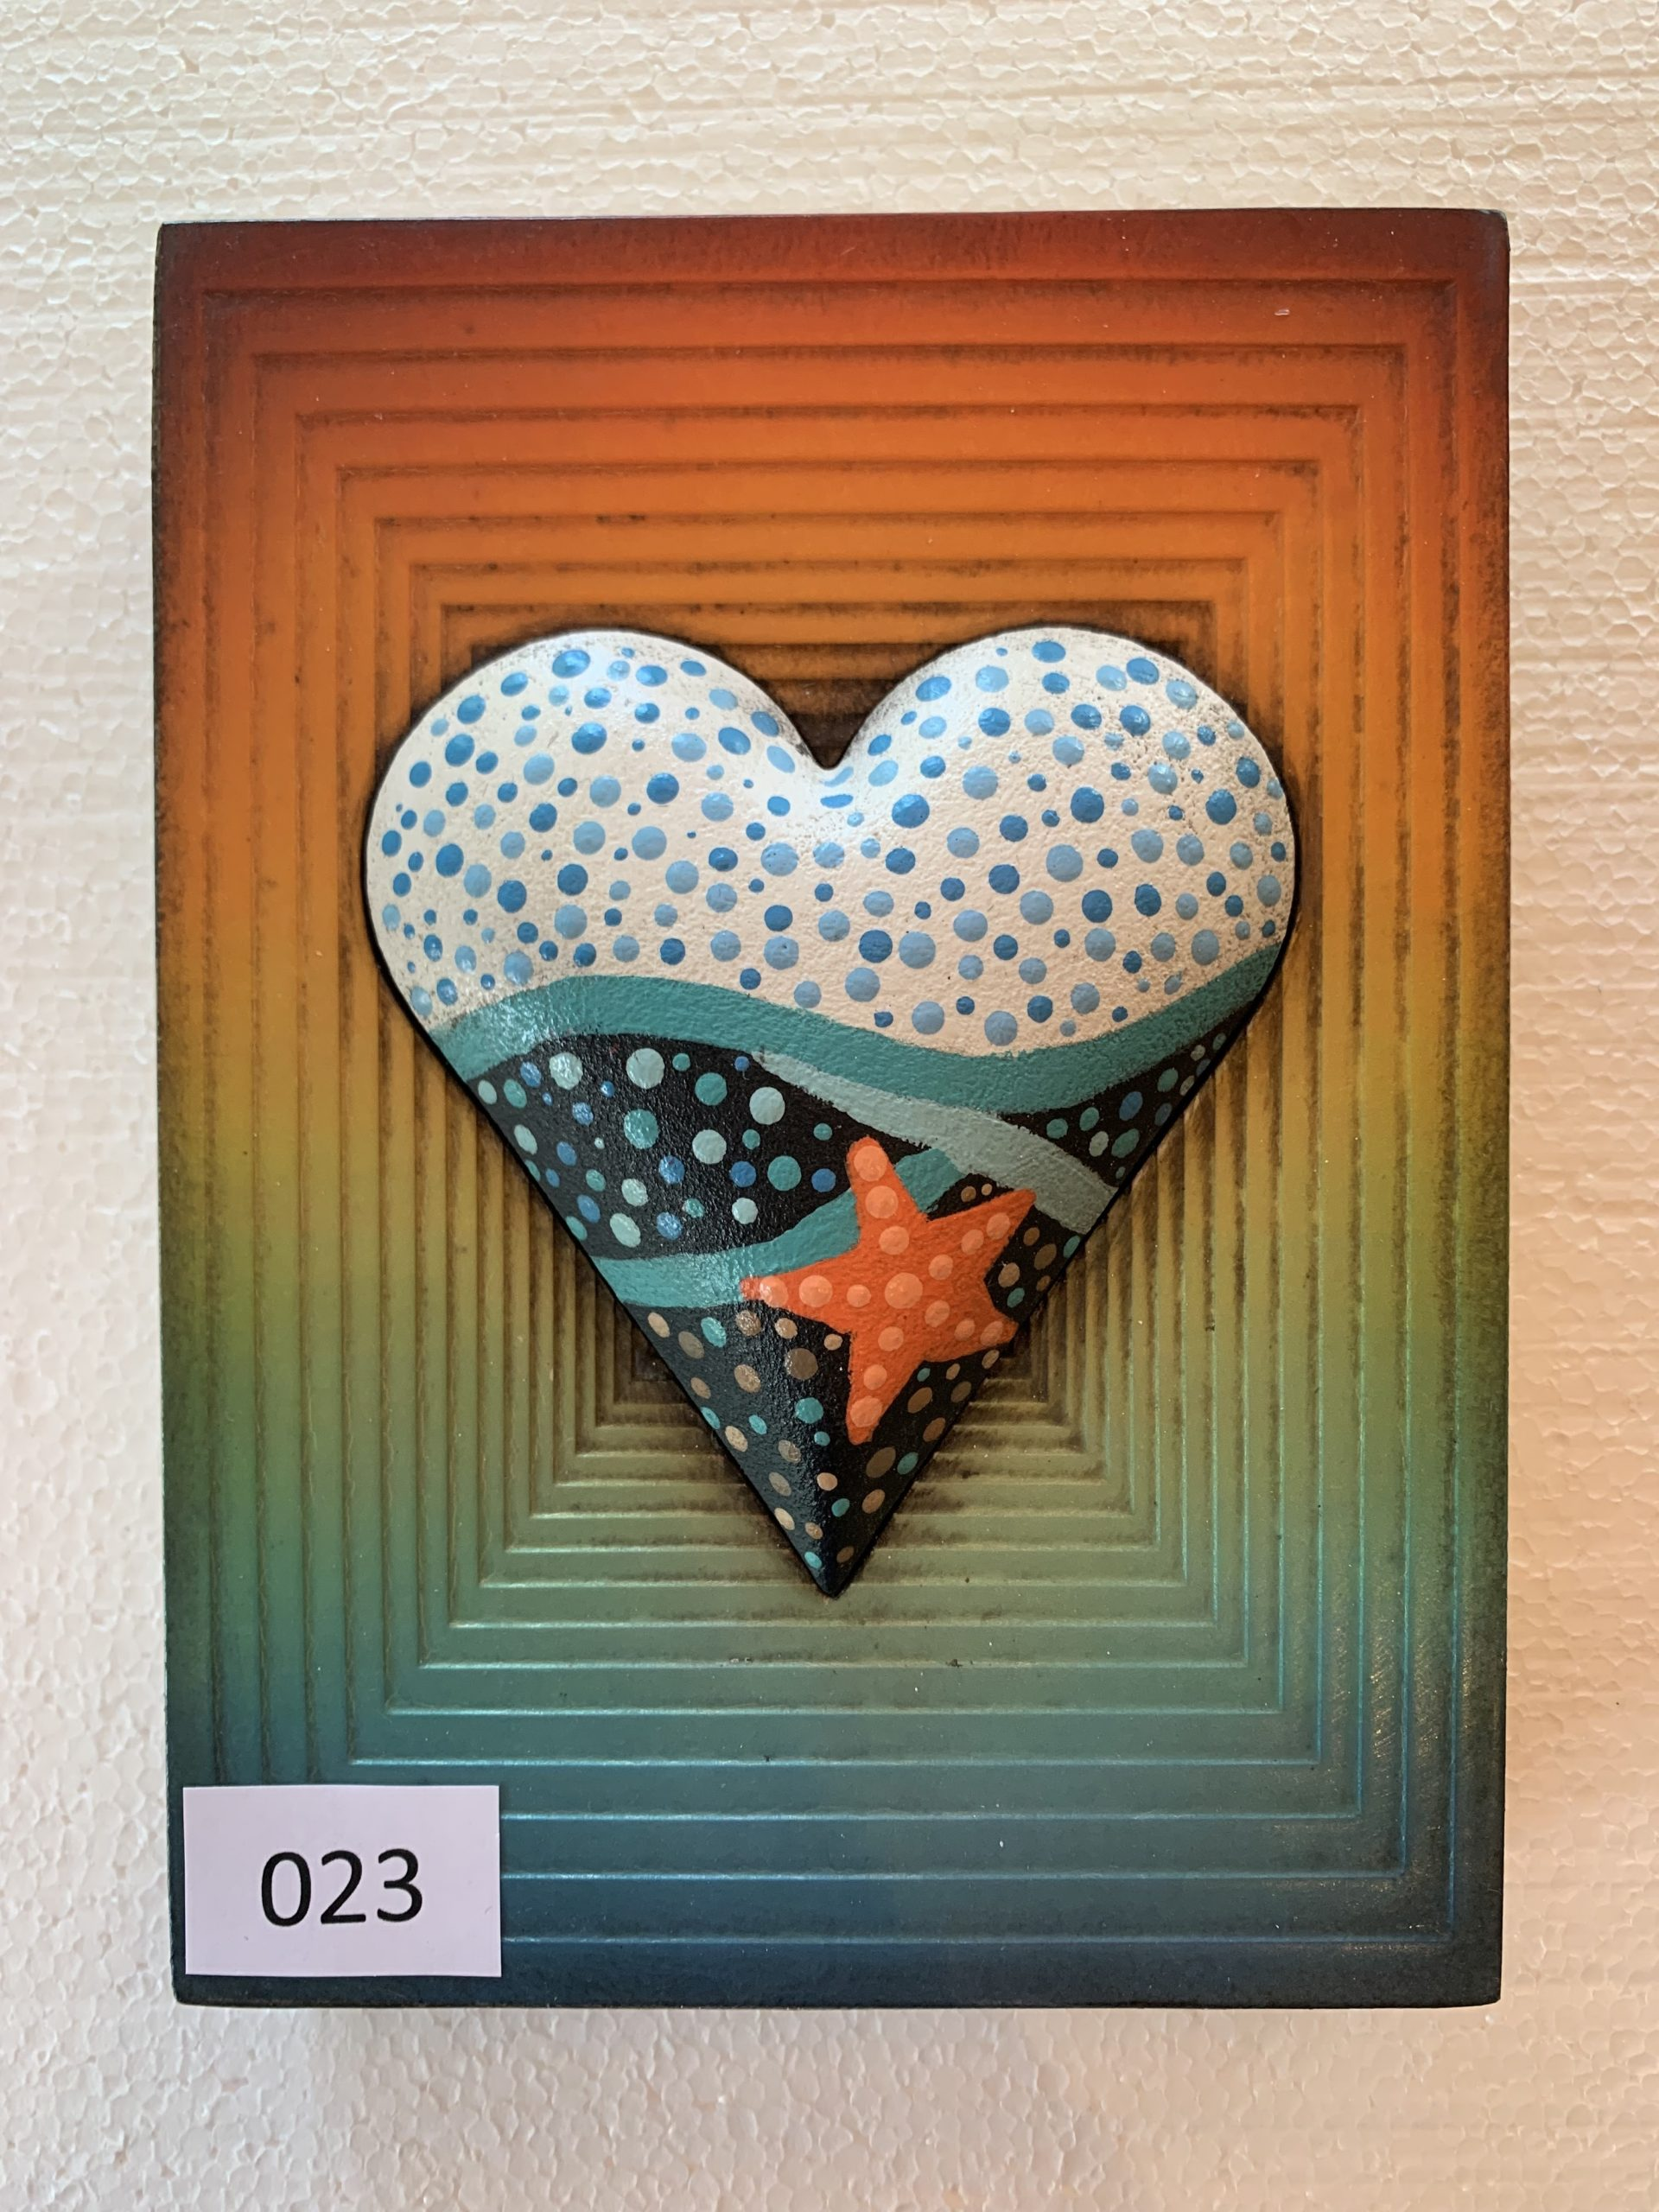 A memory block tile with a heart shape in the centre